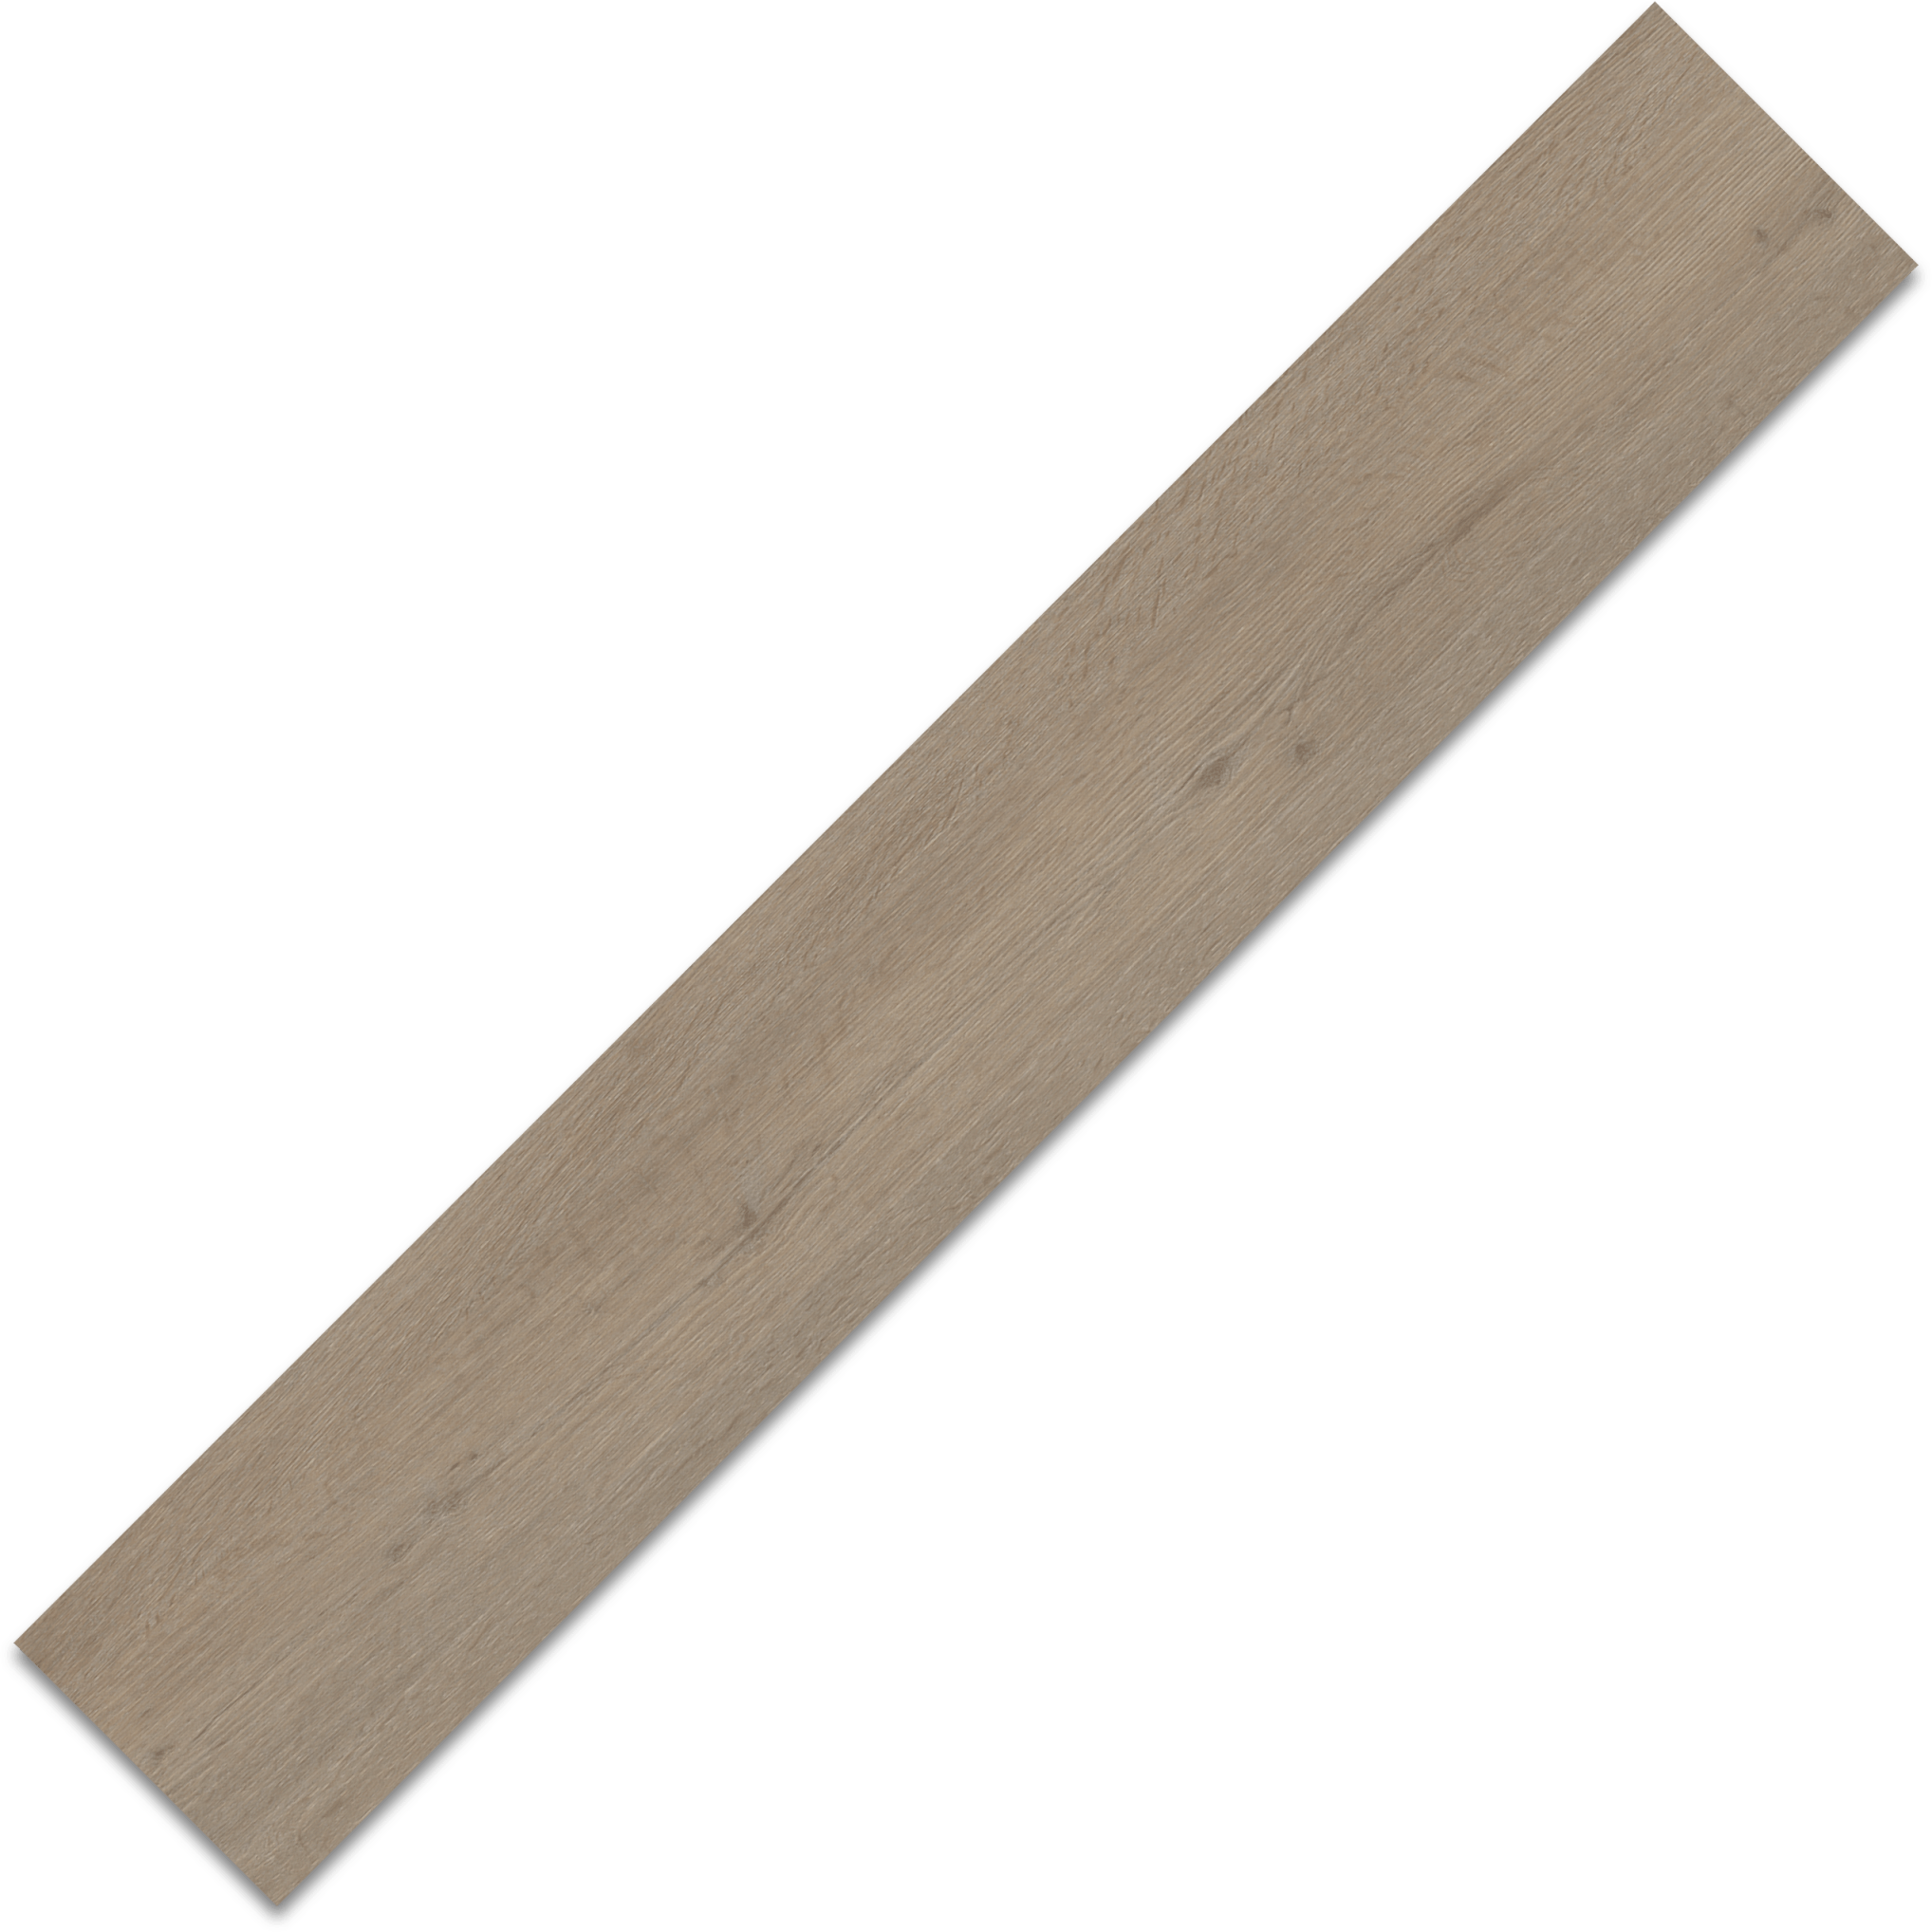 plank_1.png (copy)